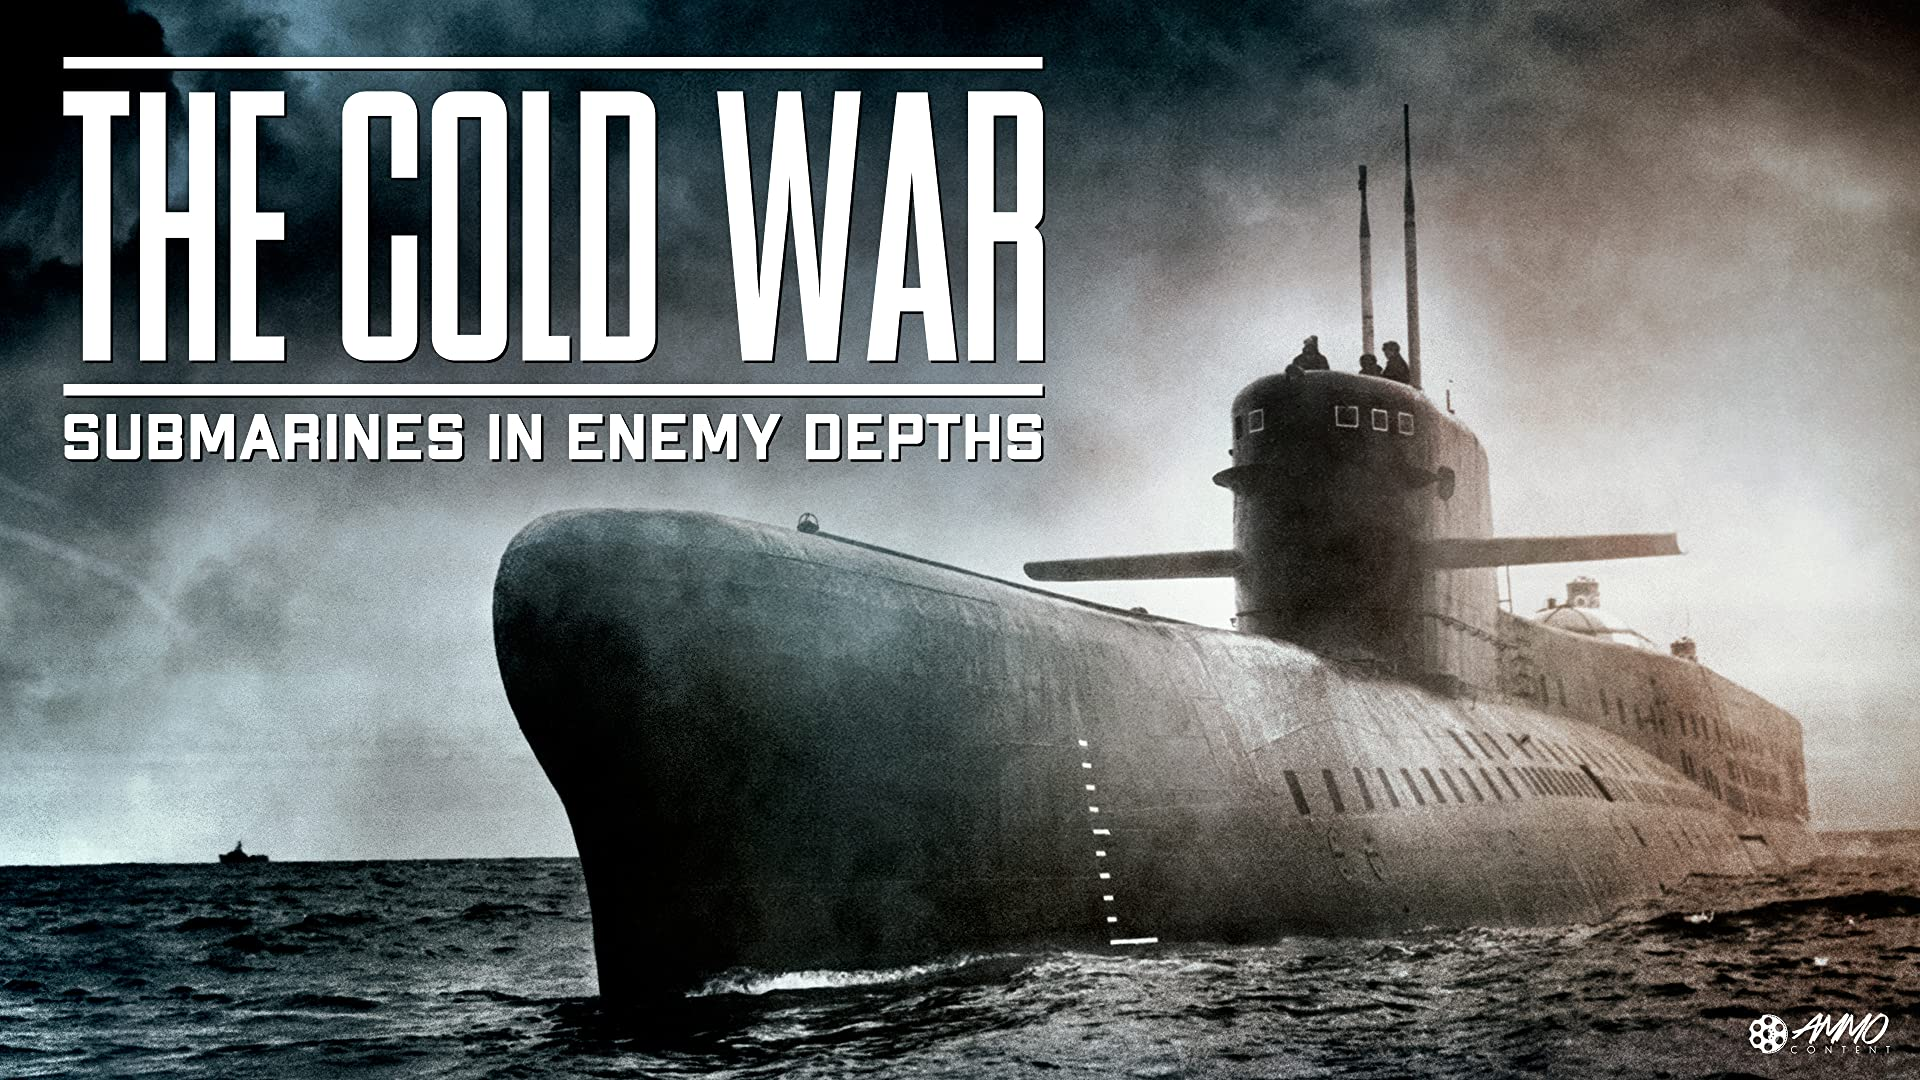 The Cold War - Submarines In Enemy Depths